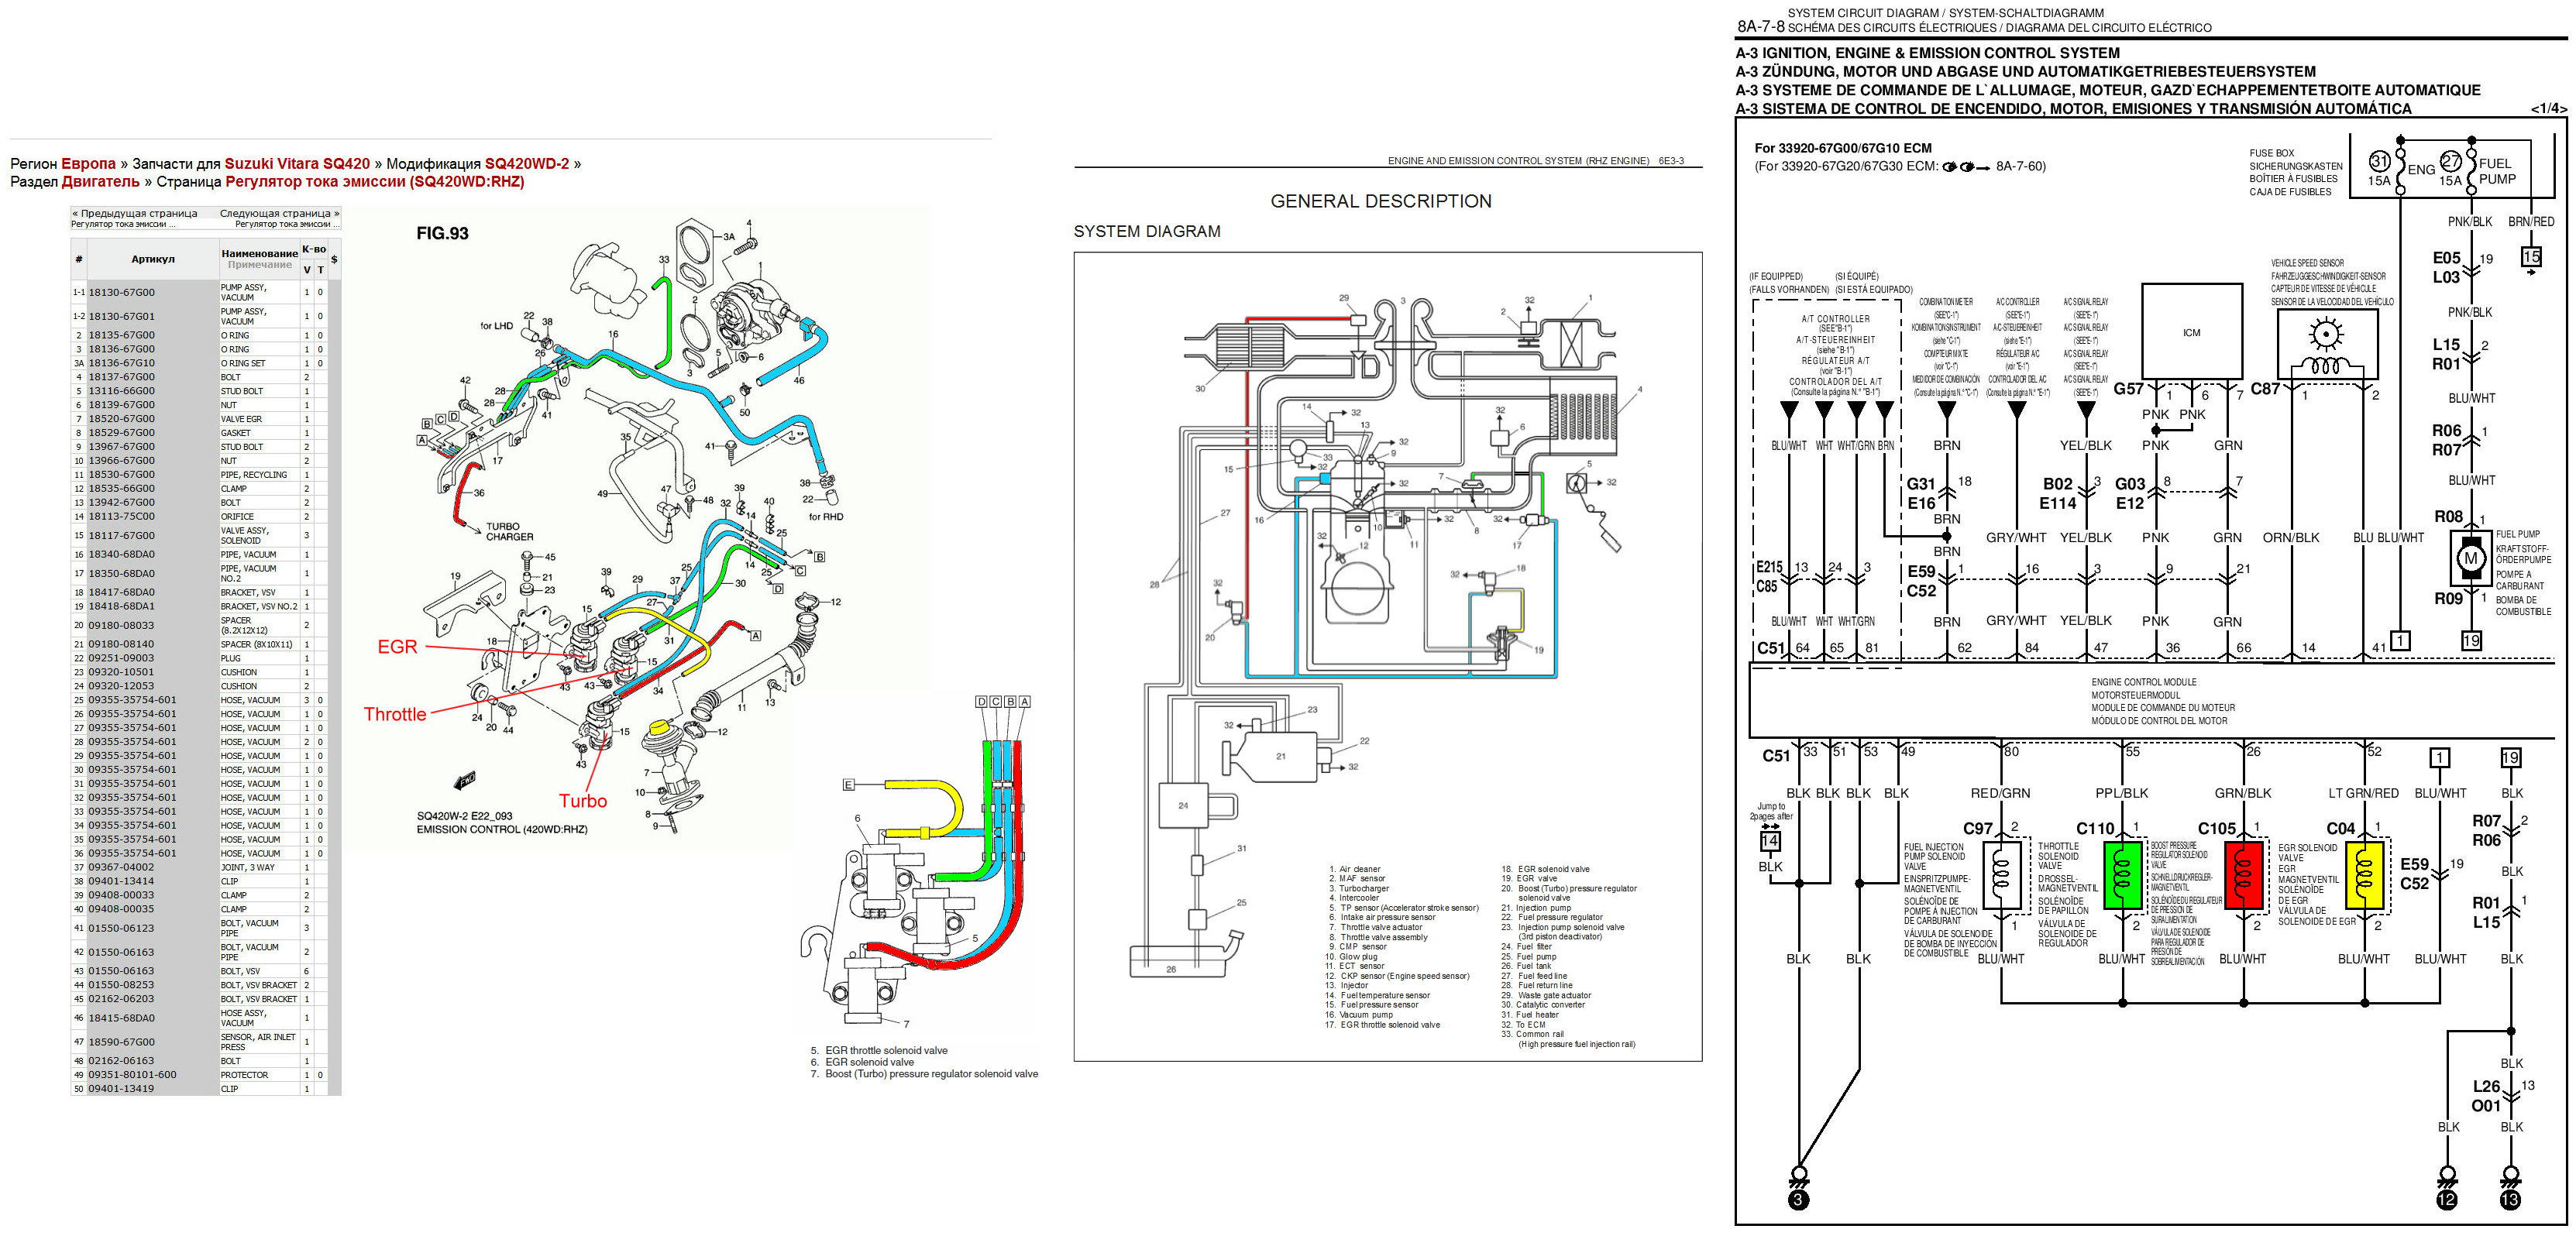 2001 SUZUKI GRAND VITARA FUSE BOX DIAGRAM - Auto